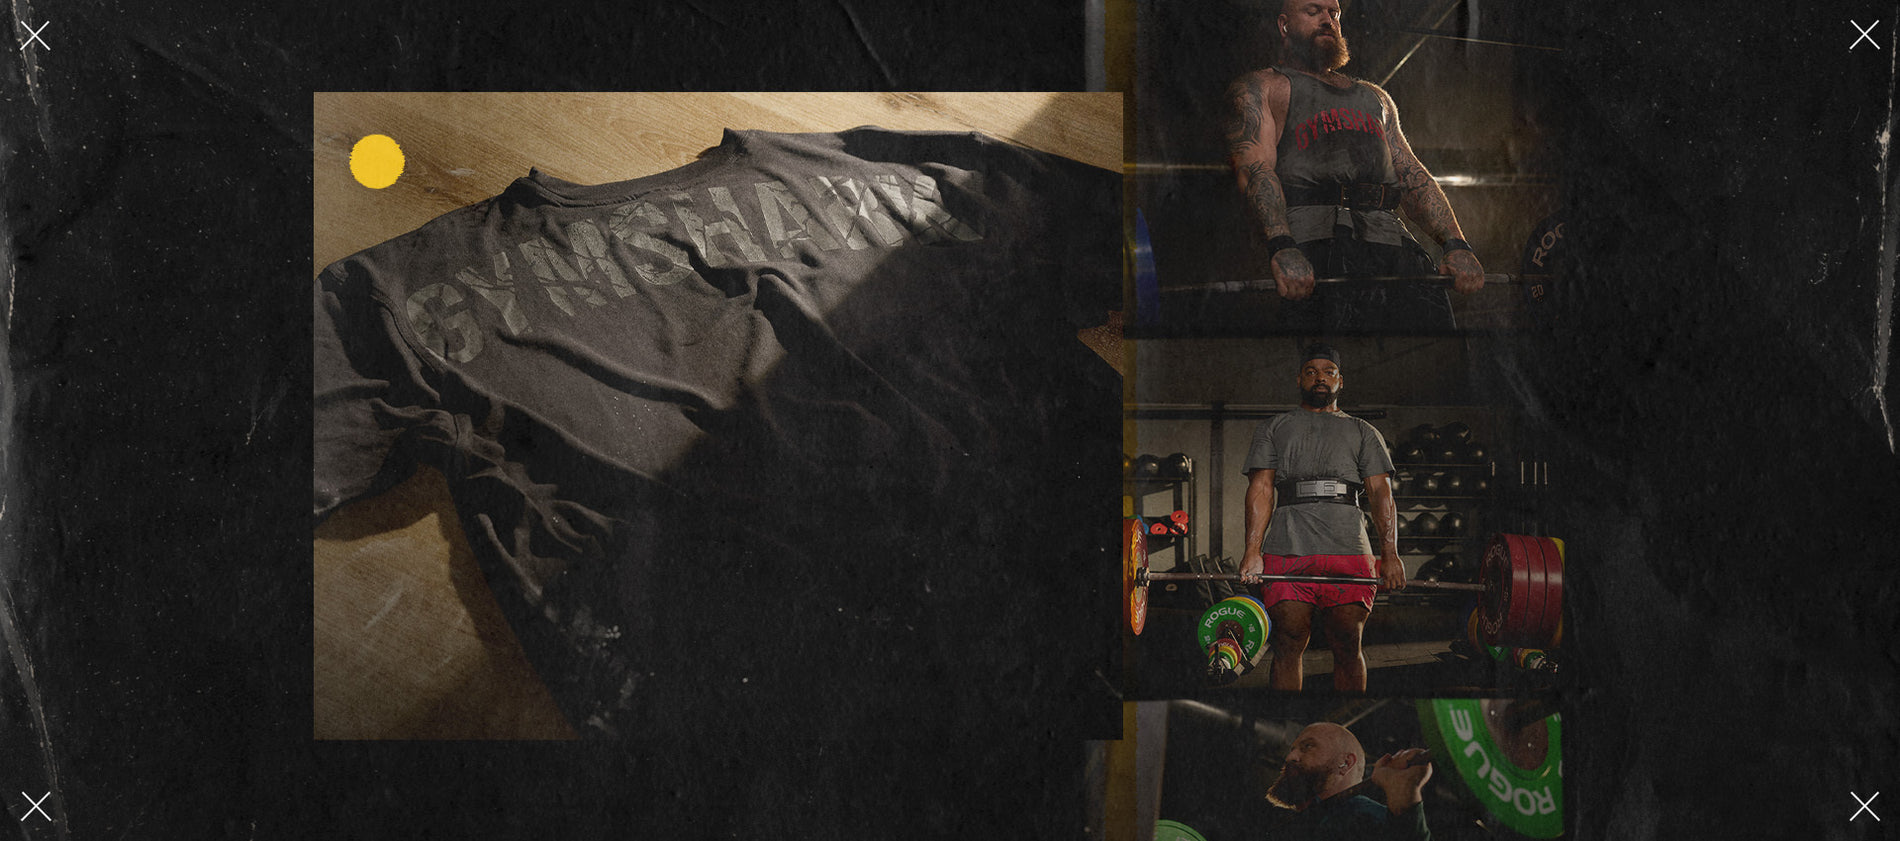 Mens Power Collection being showcased in a dark gym setting.